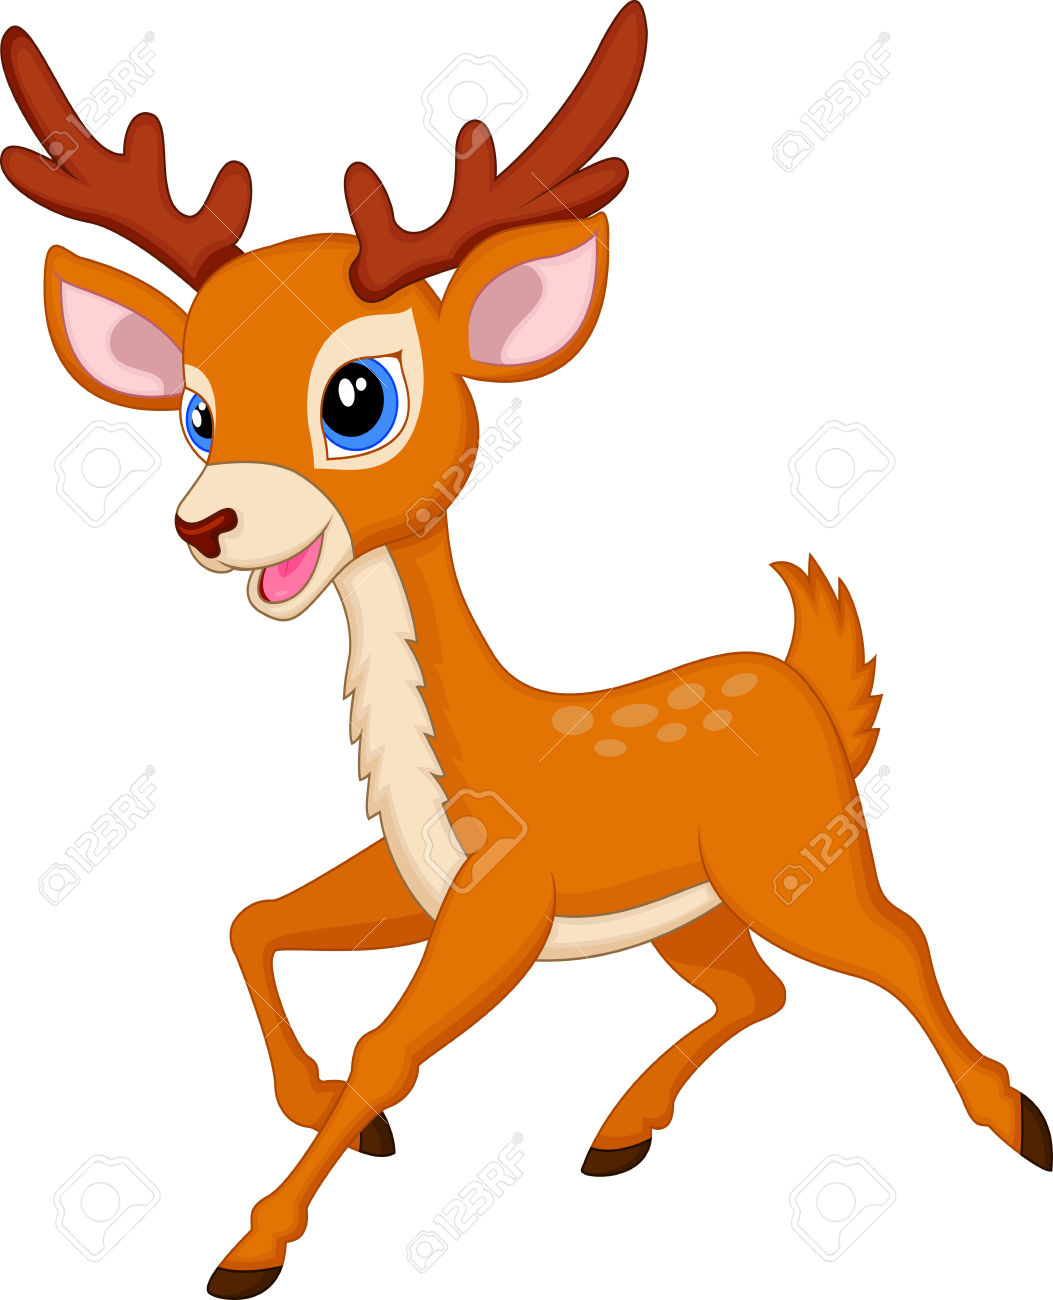 Free deer clipart images. To you